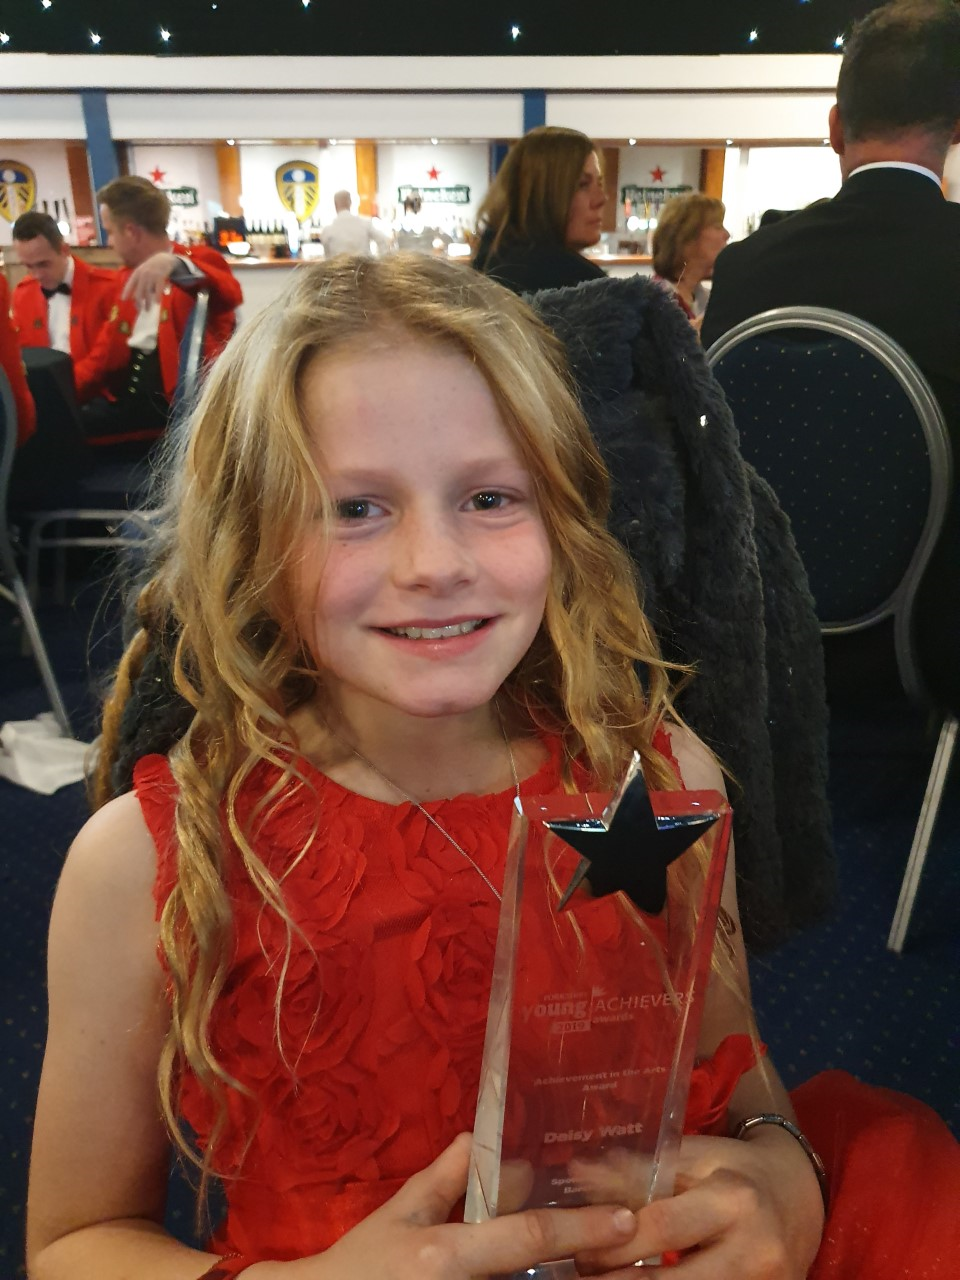 A girl holding a trophy with a star on it.